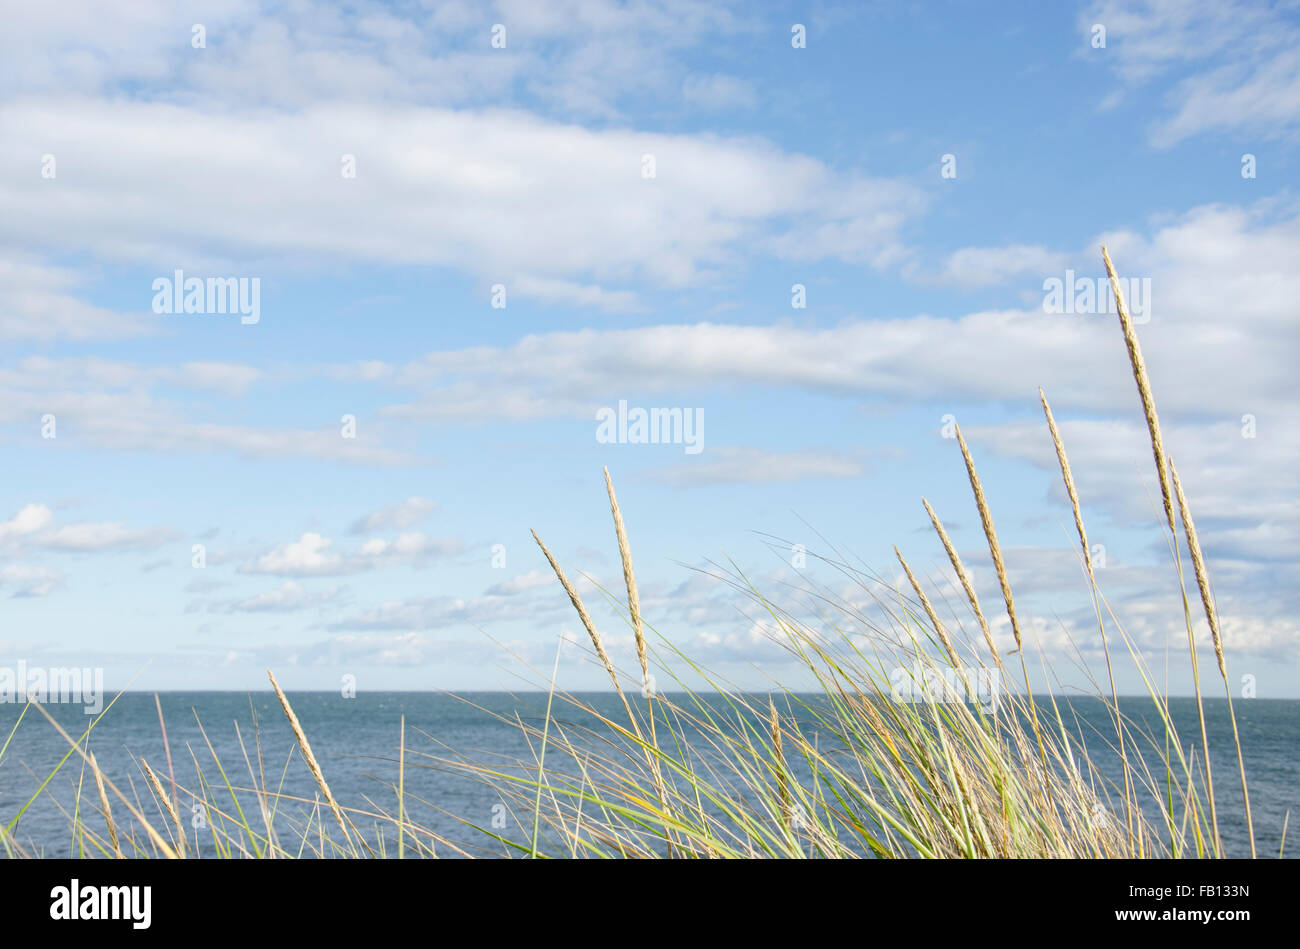 Tranquil seascape - Stock Image